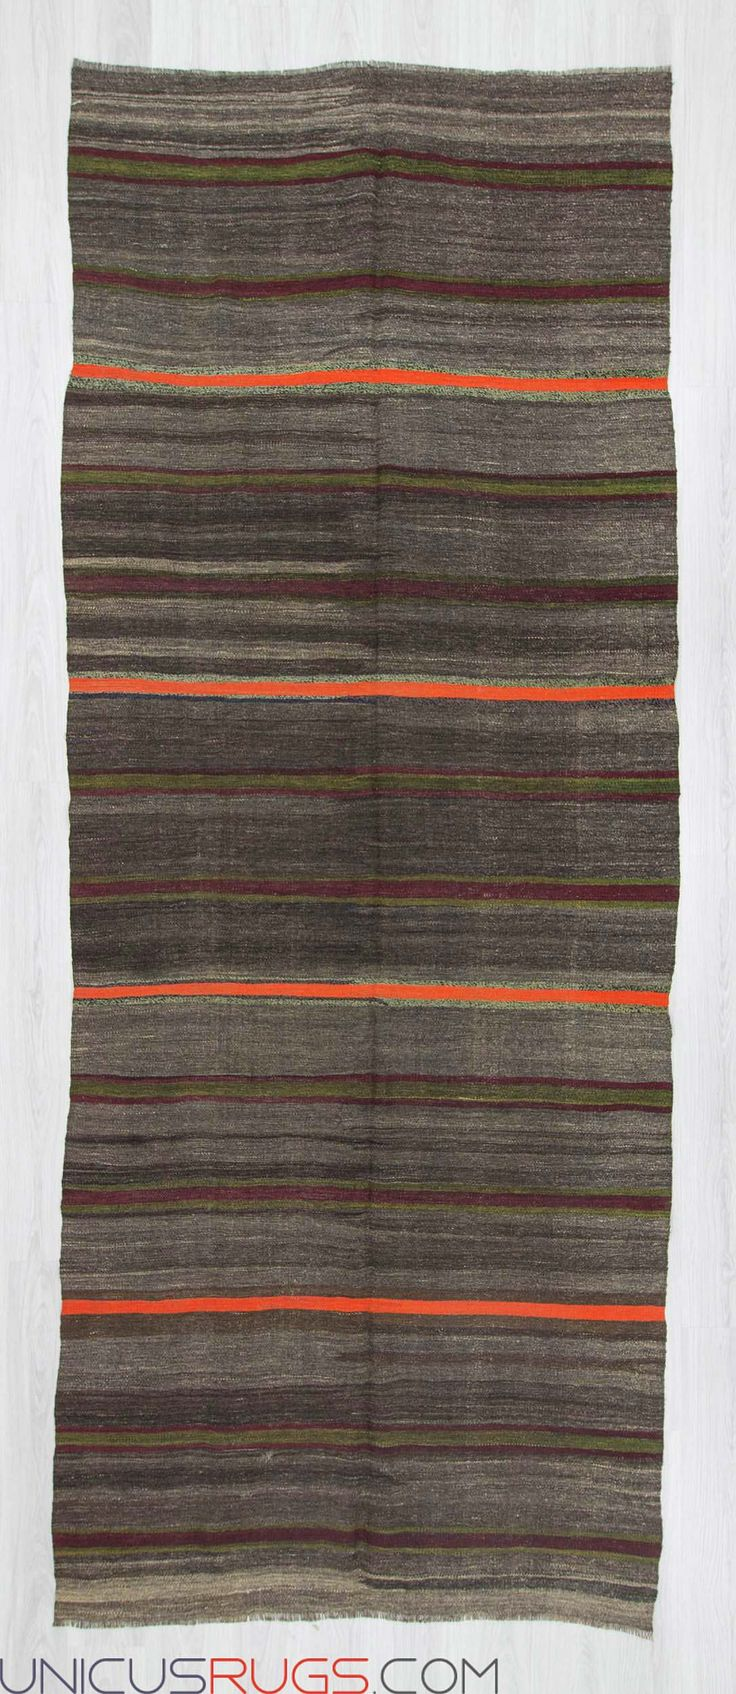 """Vintage striped kilim rug from Malatya region of Turkey. In good condition. Approximately 50-60 years old Width: 5' 1"""" - Length: 13' 0"""" Striped Kilims"""